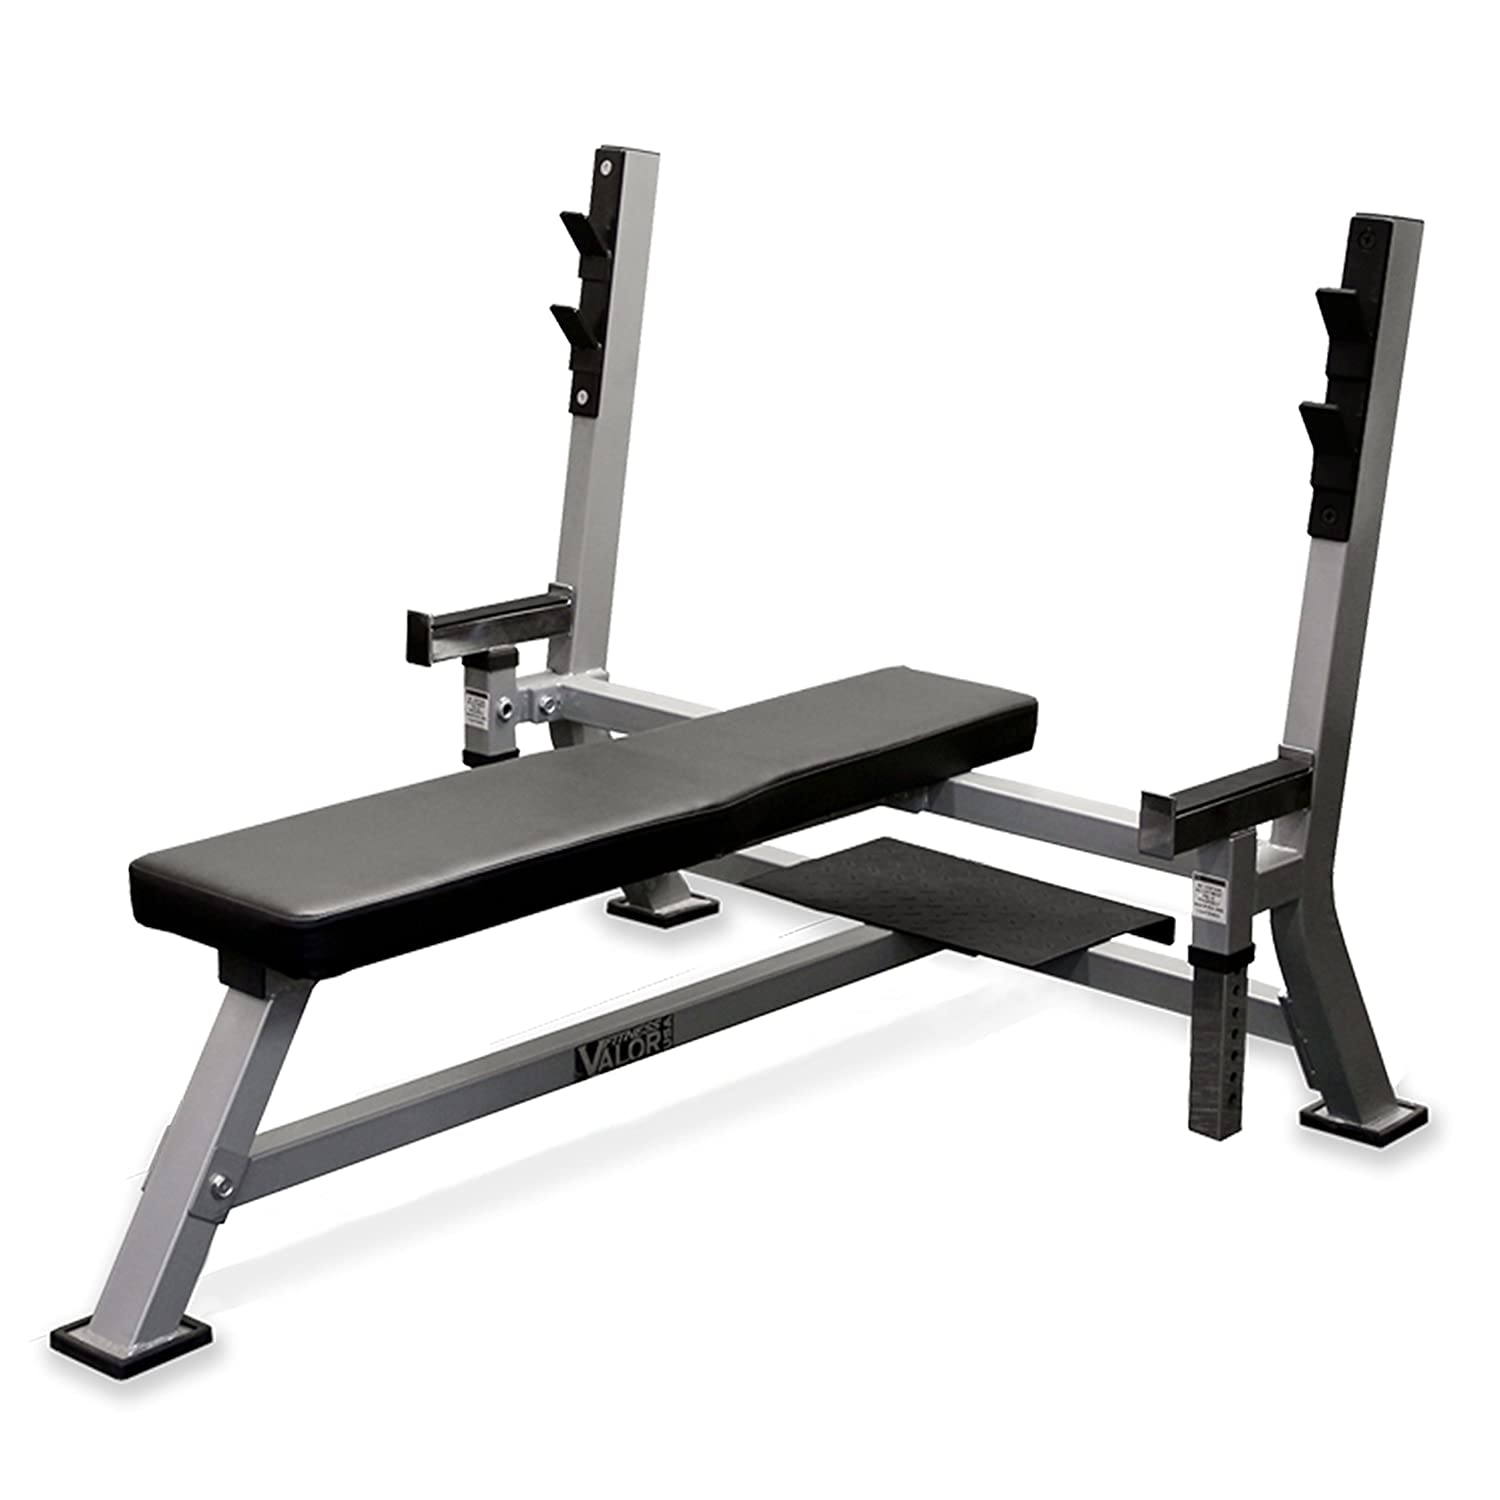 Valor Fitness BF-48 Olympic Bench Station with Adjustable Safety Catches and Spotter Stand